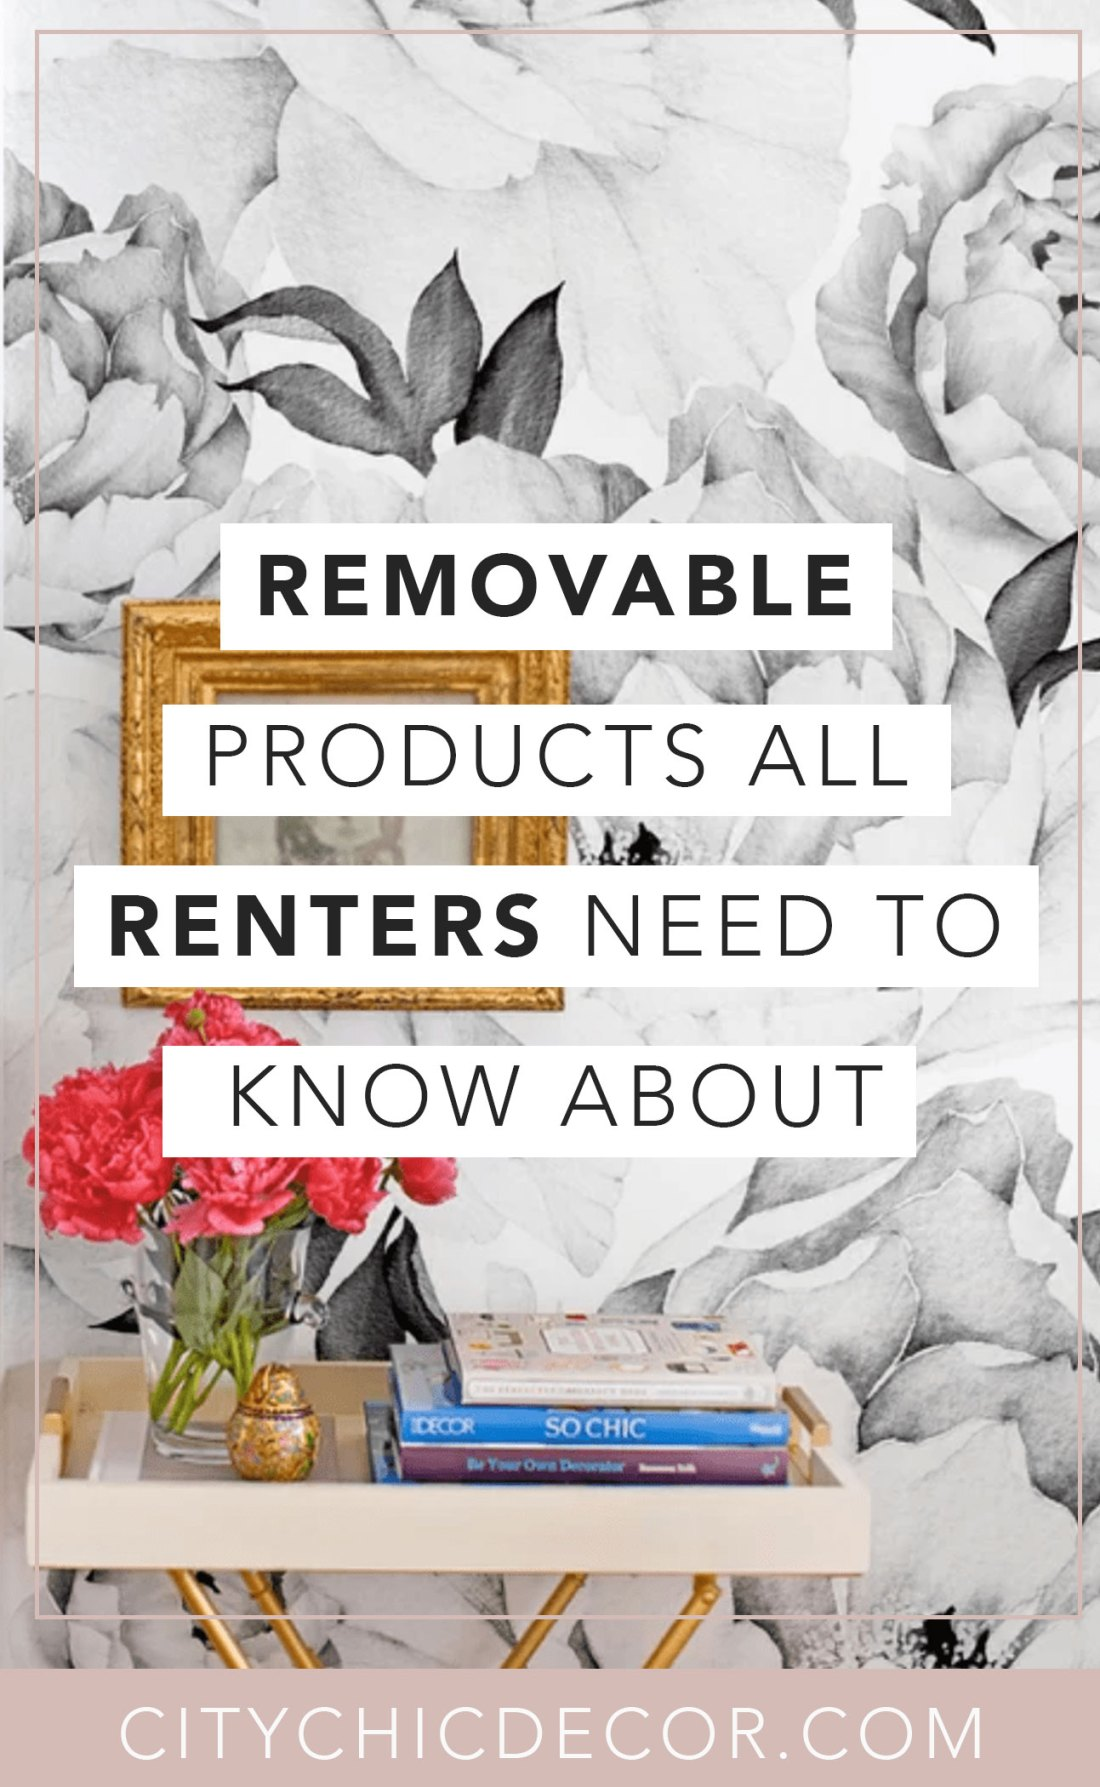 If you live in a rental apartment and struggle decorating it, you need to know about these removable and temporary products. From wallpaper, to flooring and backsplashes, these cheap items will blog you away! #rentalhomedecorating #rentaldecorating #rentalapartmentdecorating #removablewallpaper #removablebacksplash #removableflooring